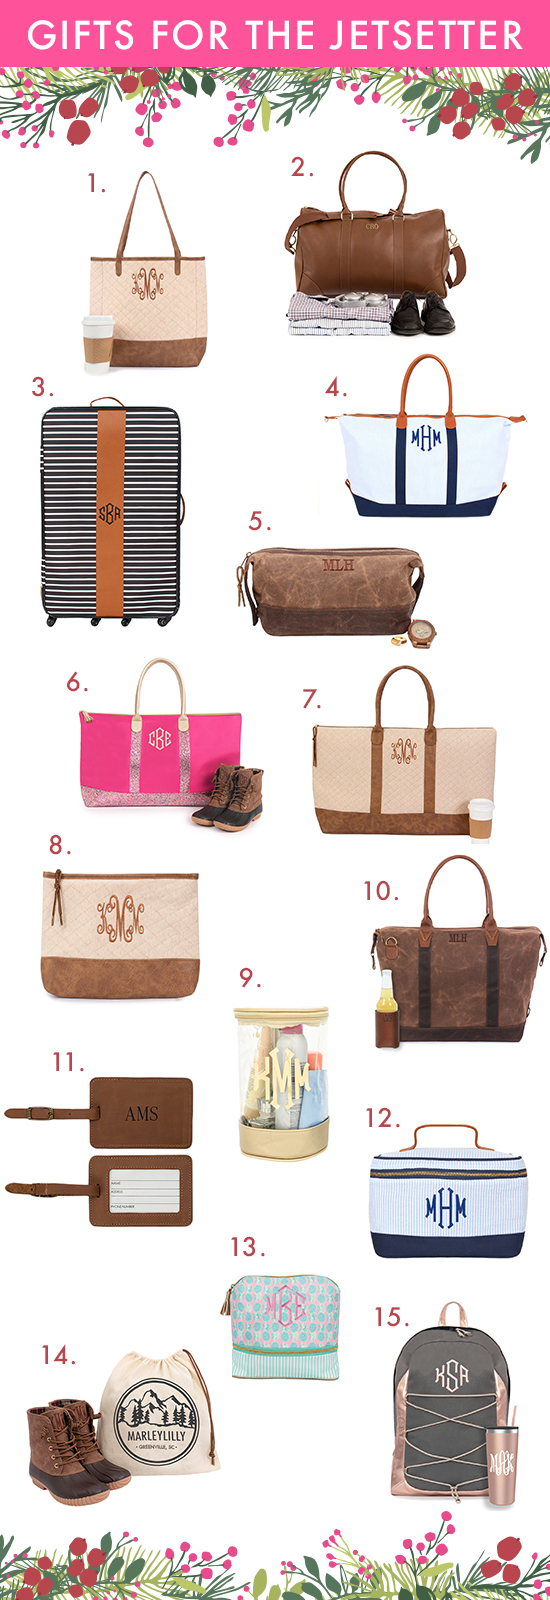 monogrammed gifts for the jetsetter